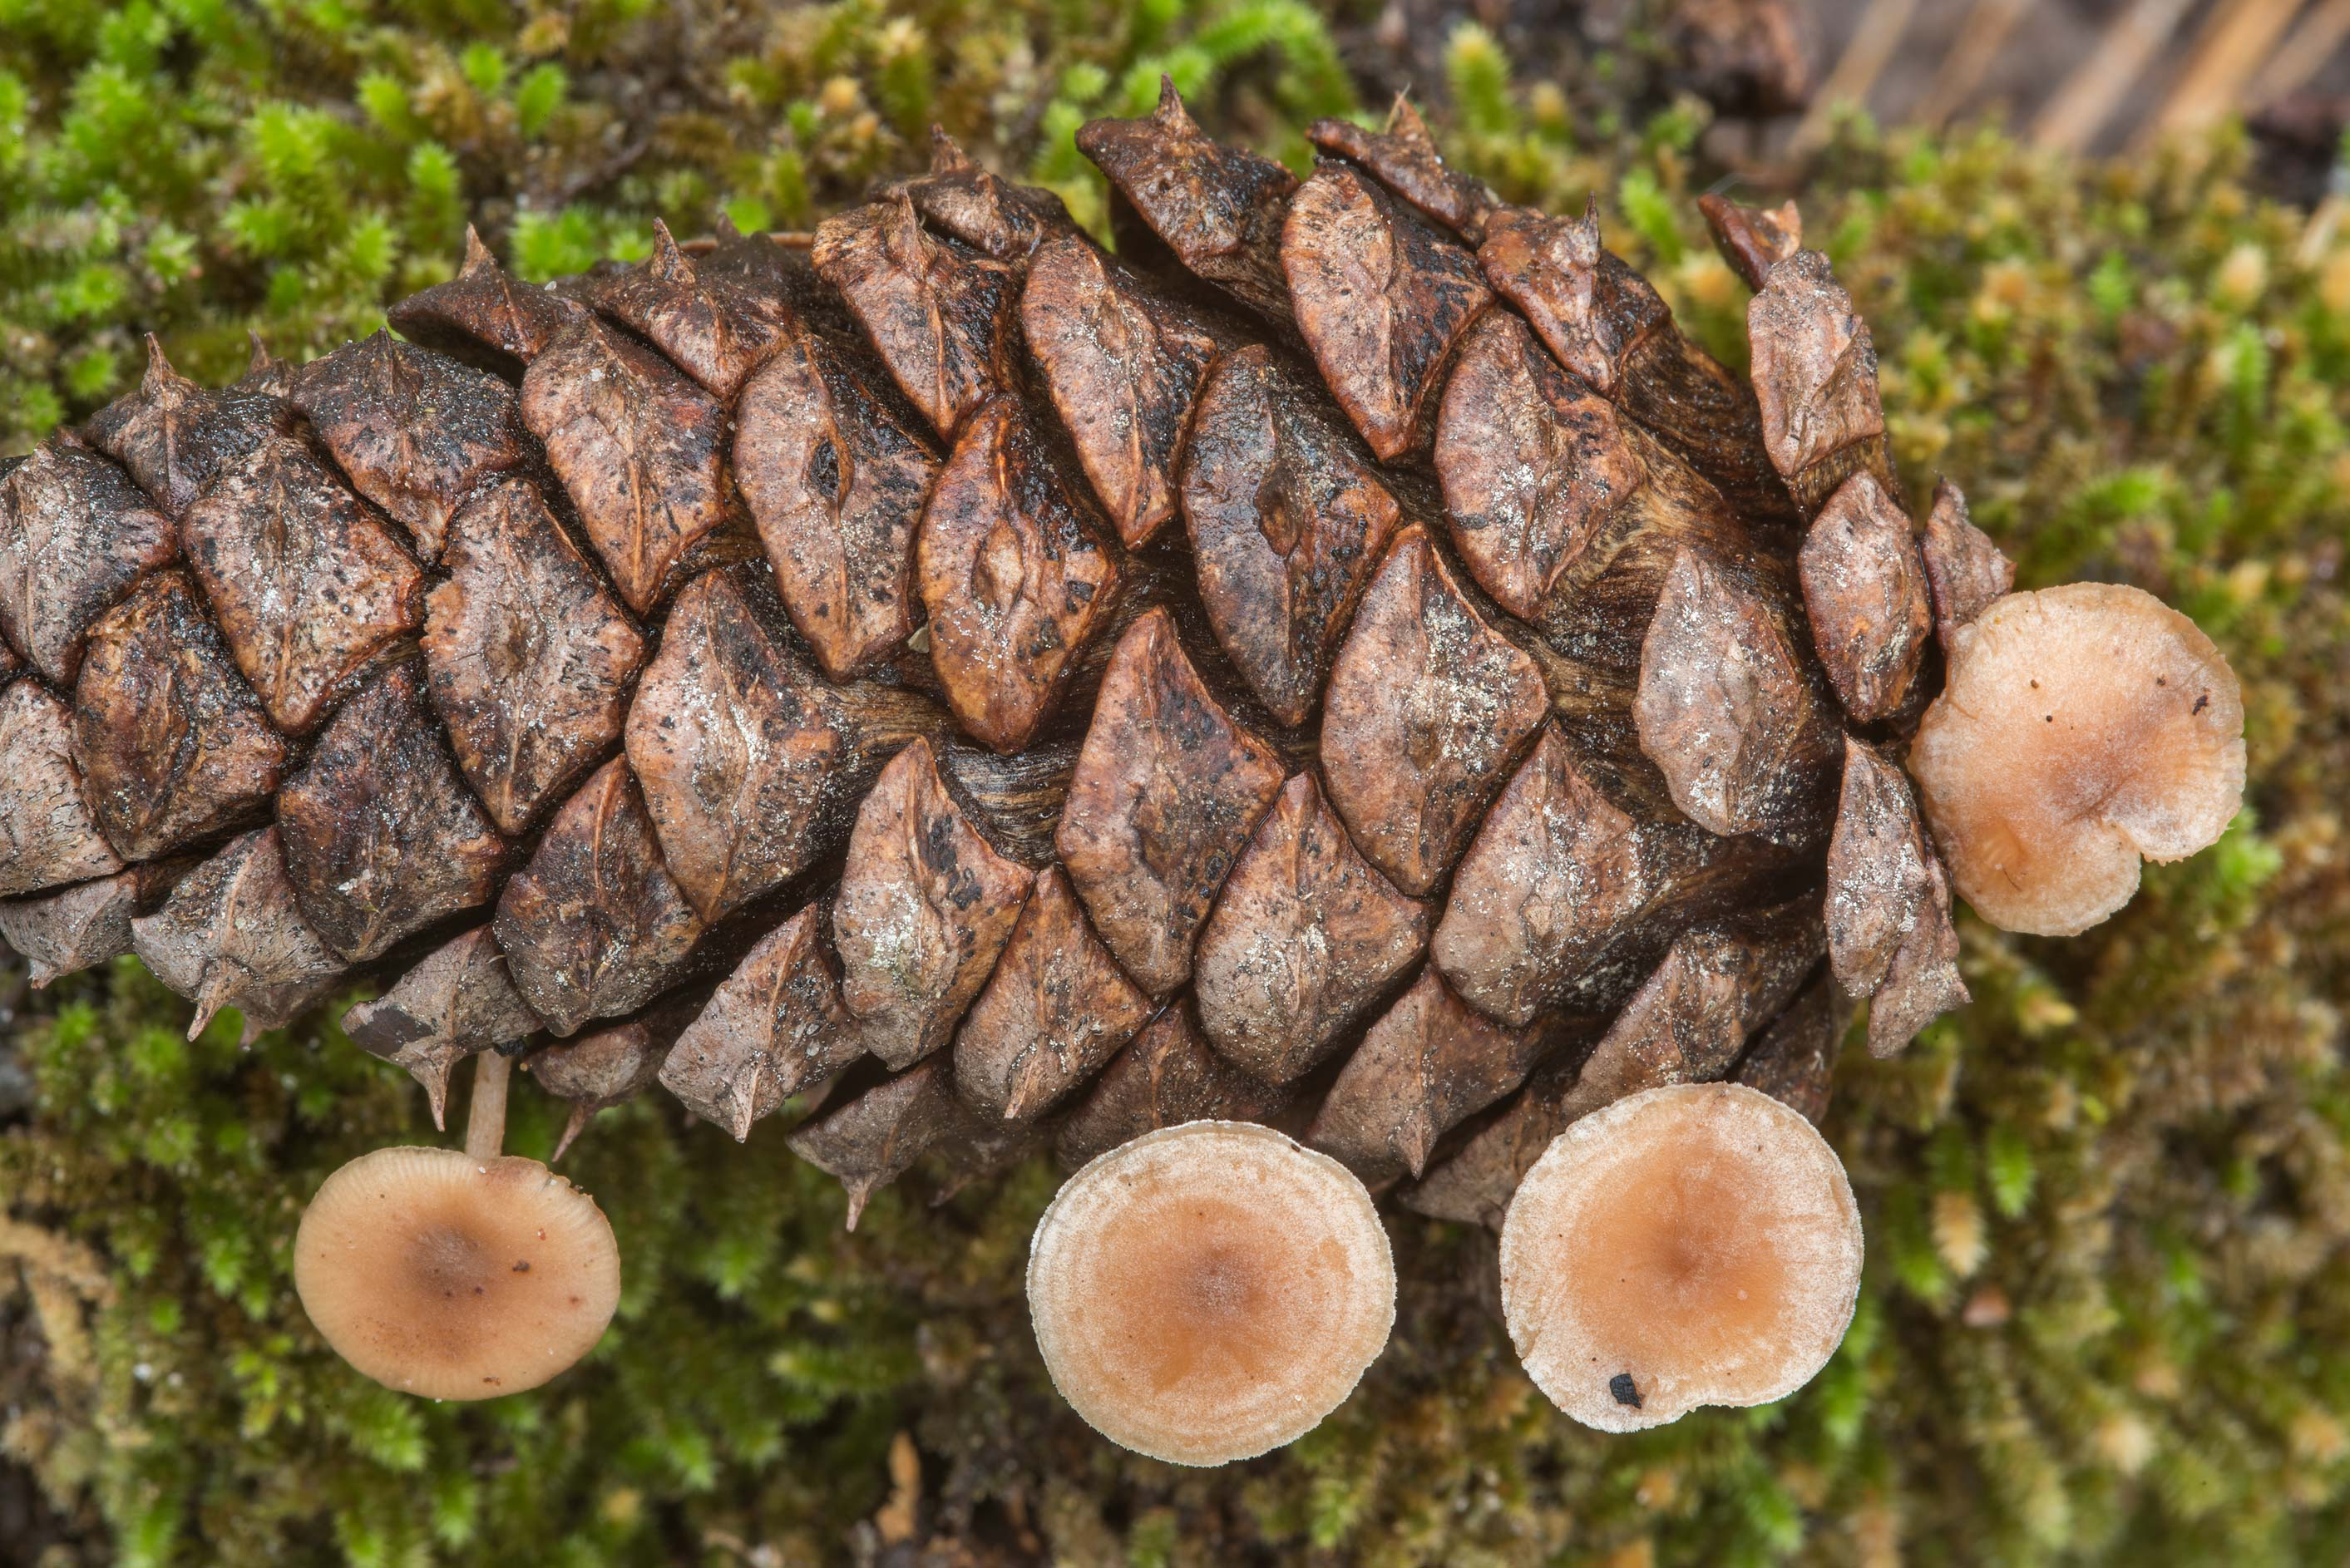 Conifercone cap mushrooms (Baeospora myosura) on...National Forest. Richards, Texas